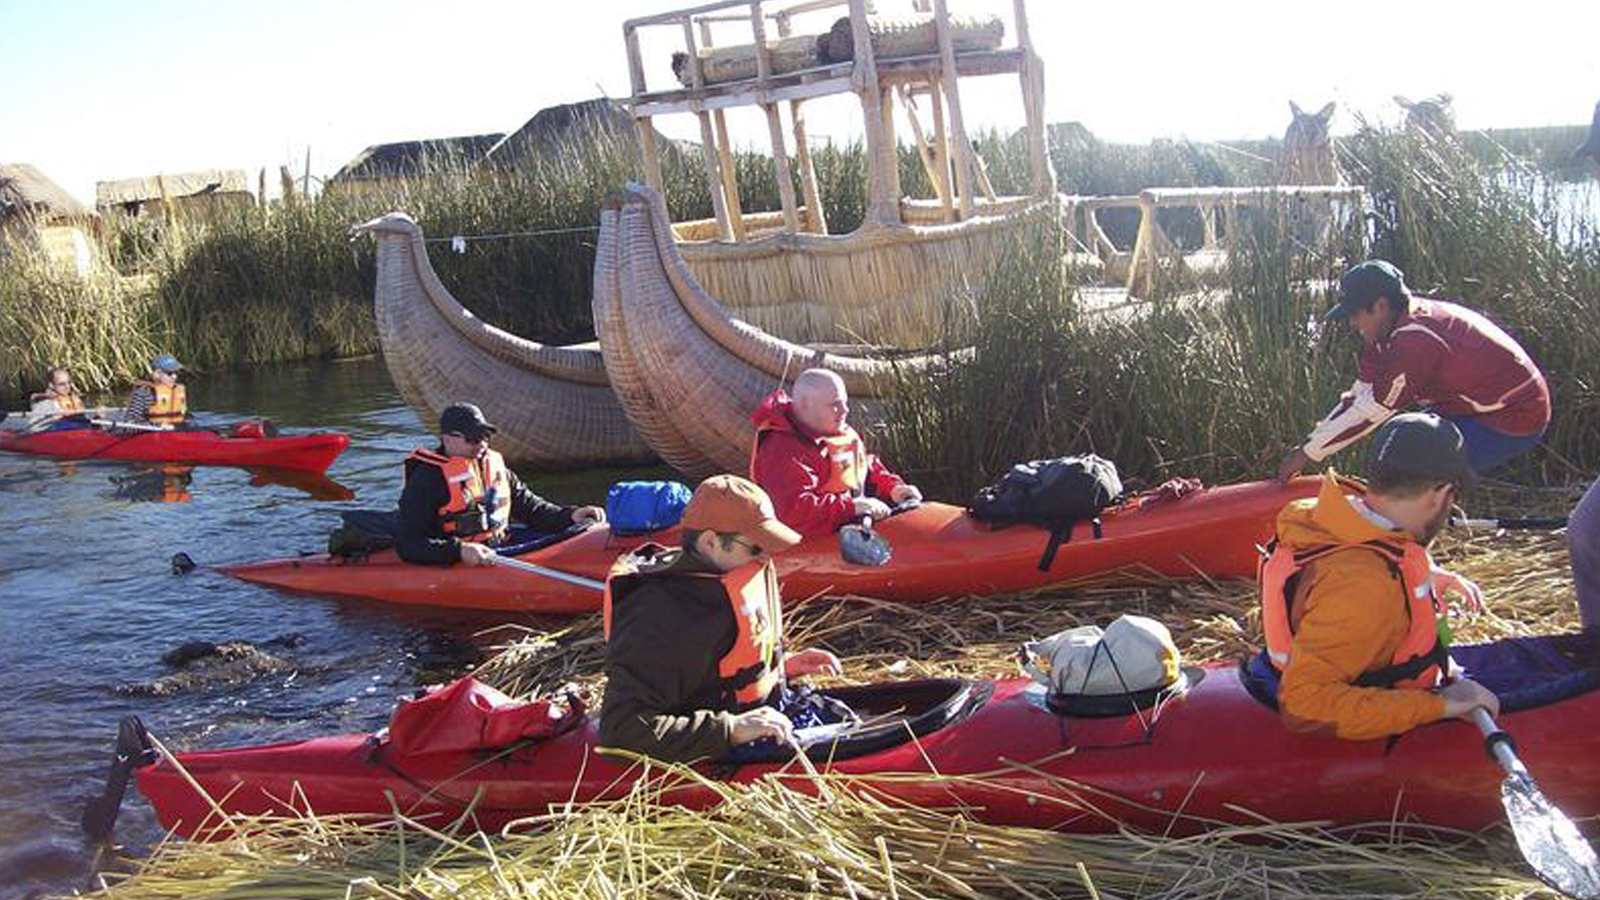 Foto 1 de Kayaking no lago titicaca